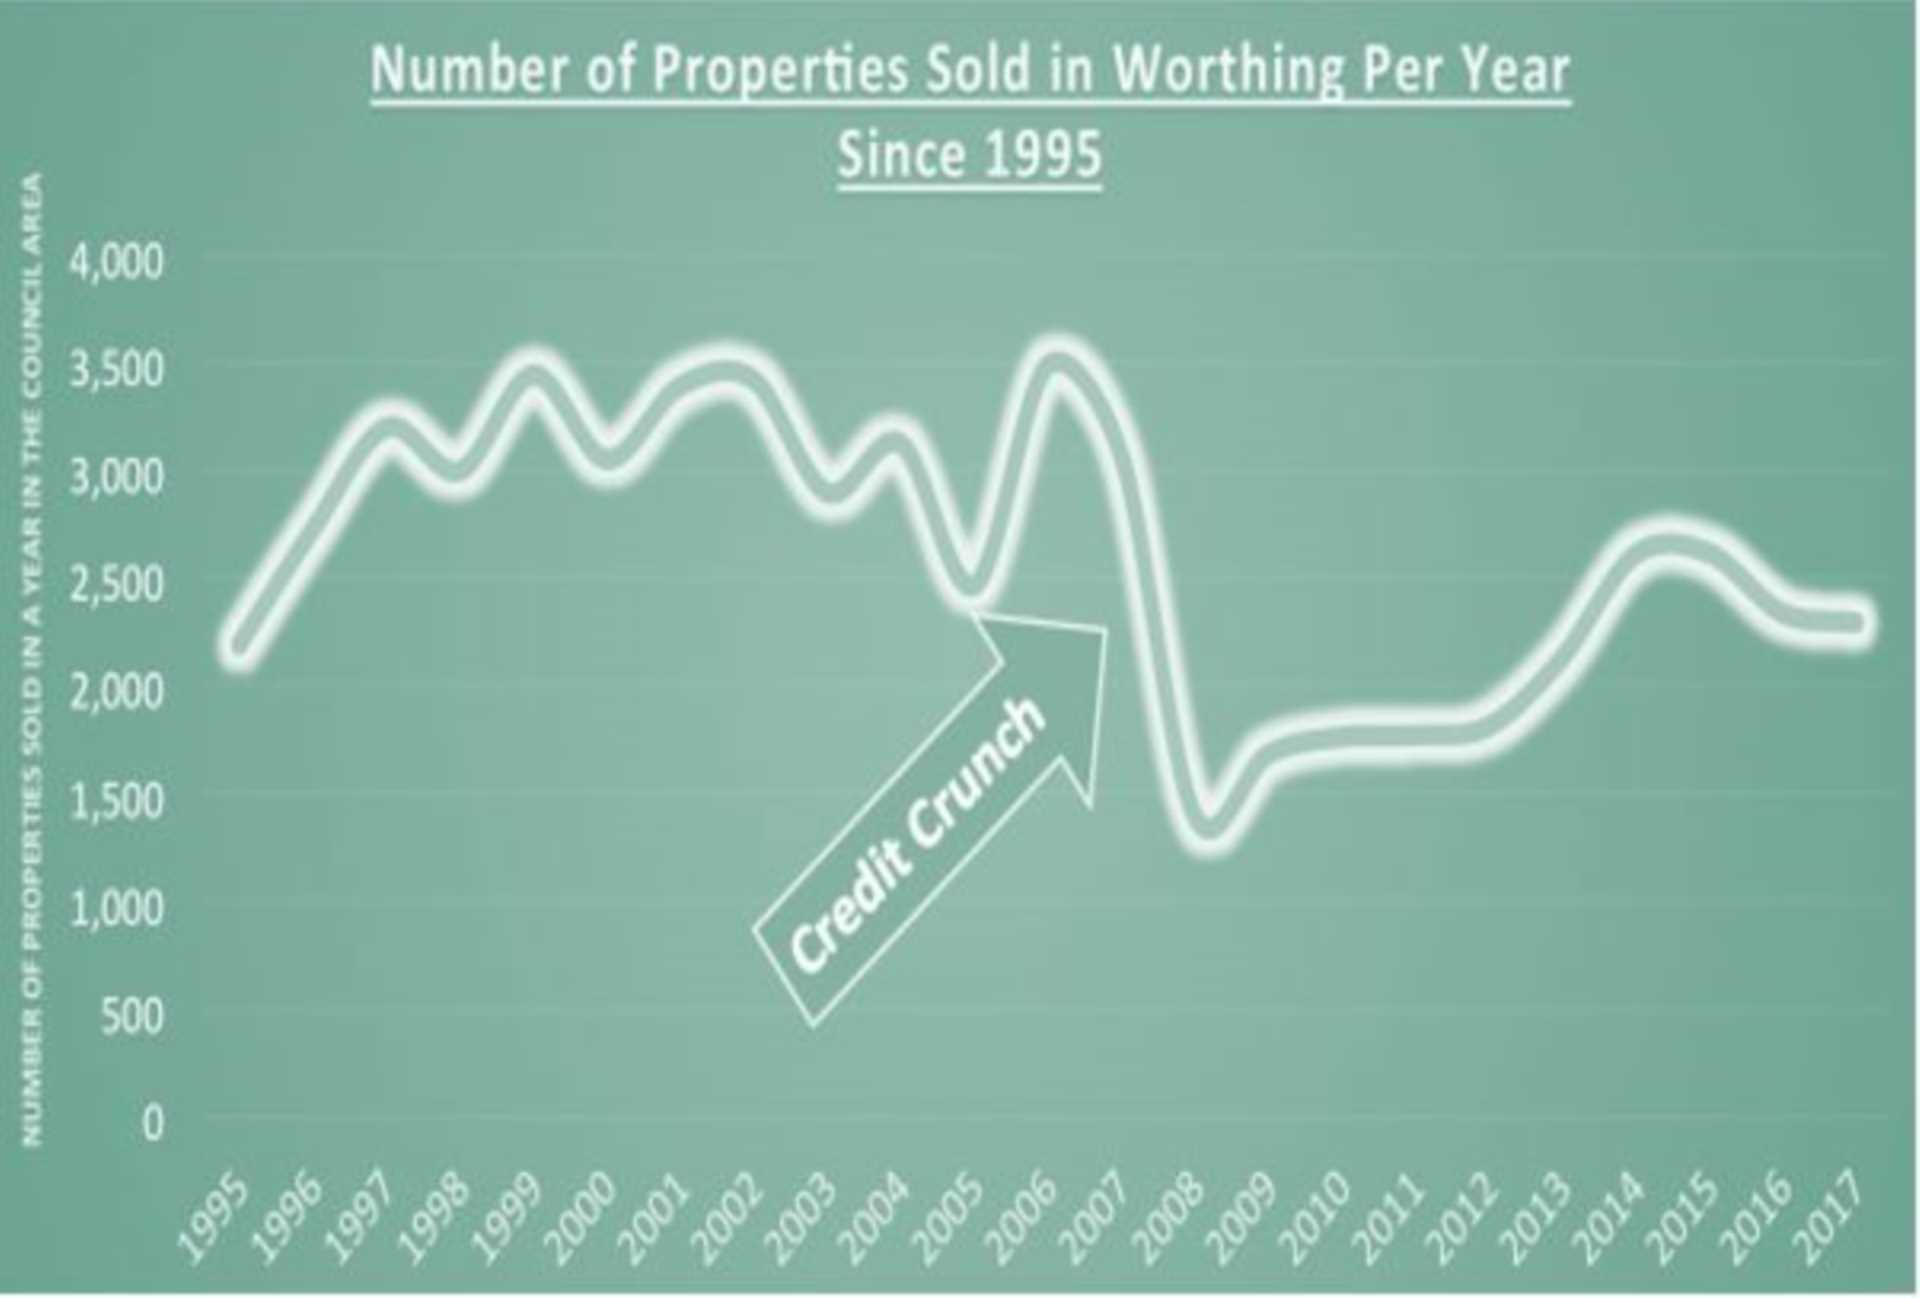 10.4% Drop in the Worthing Property Market